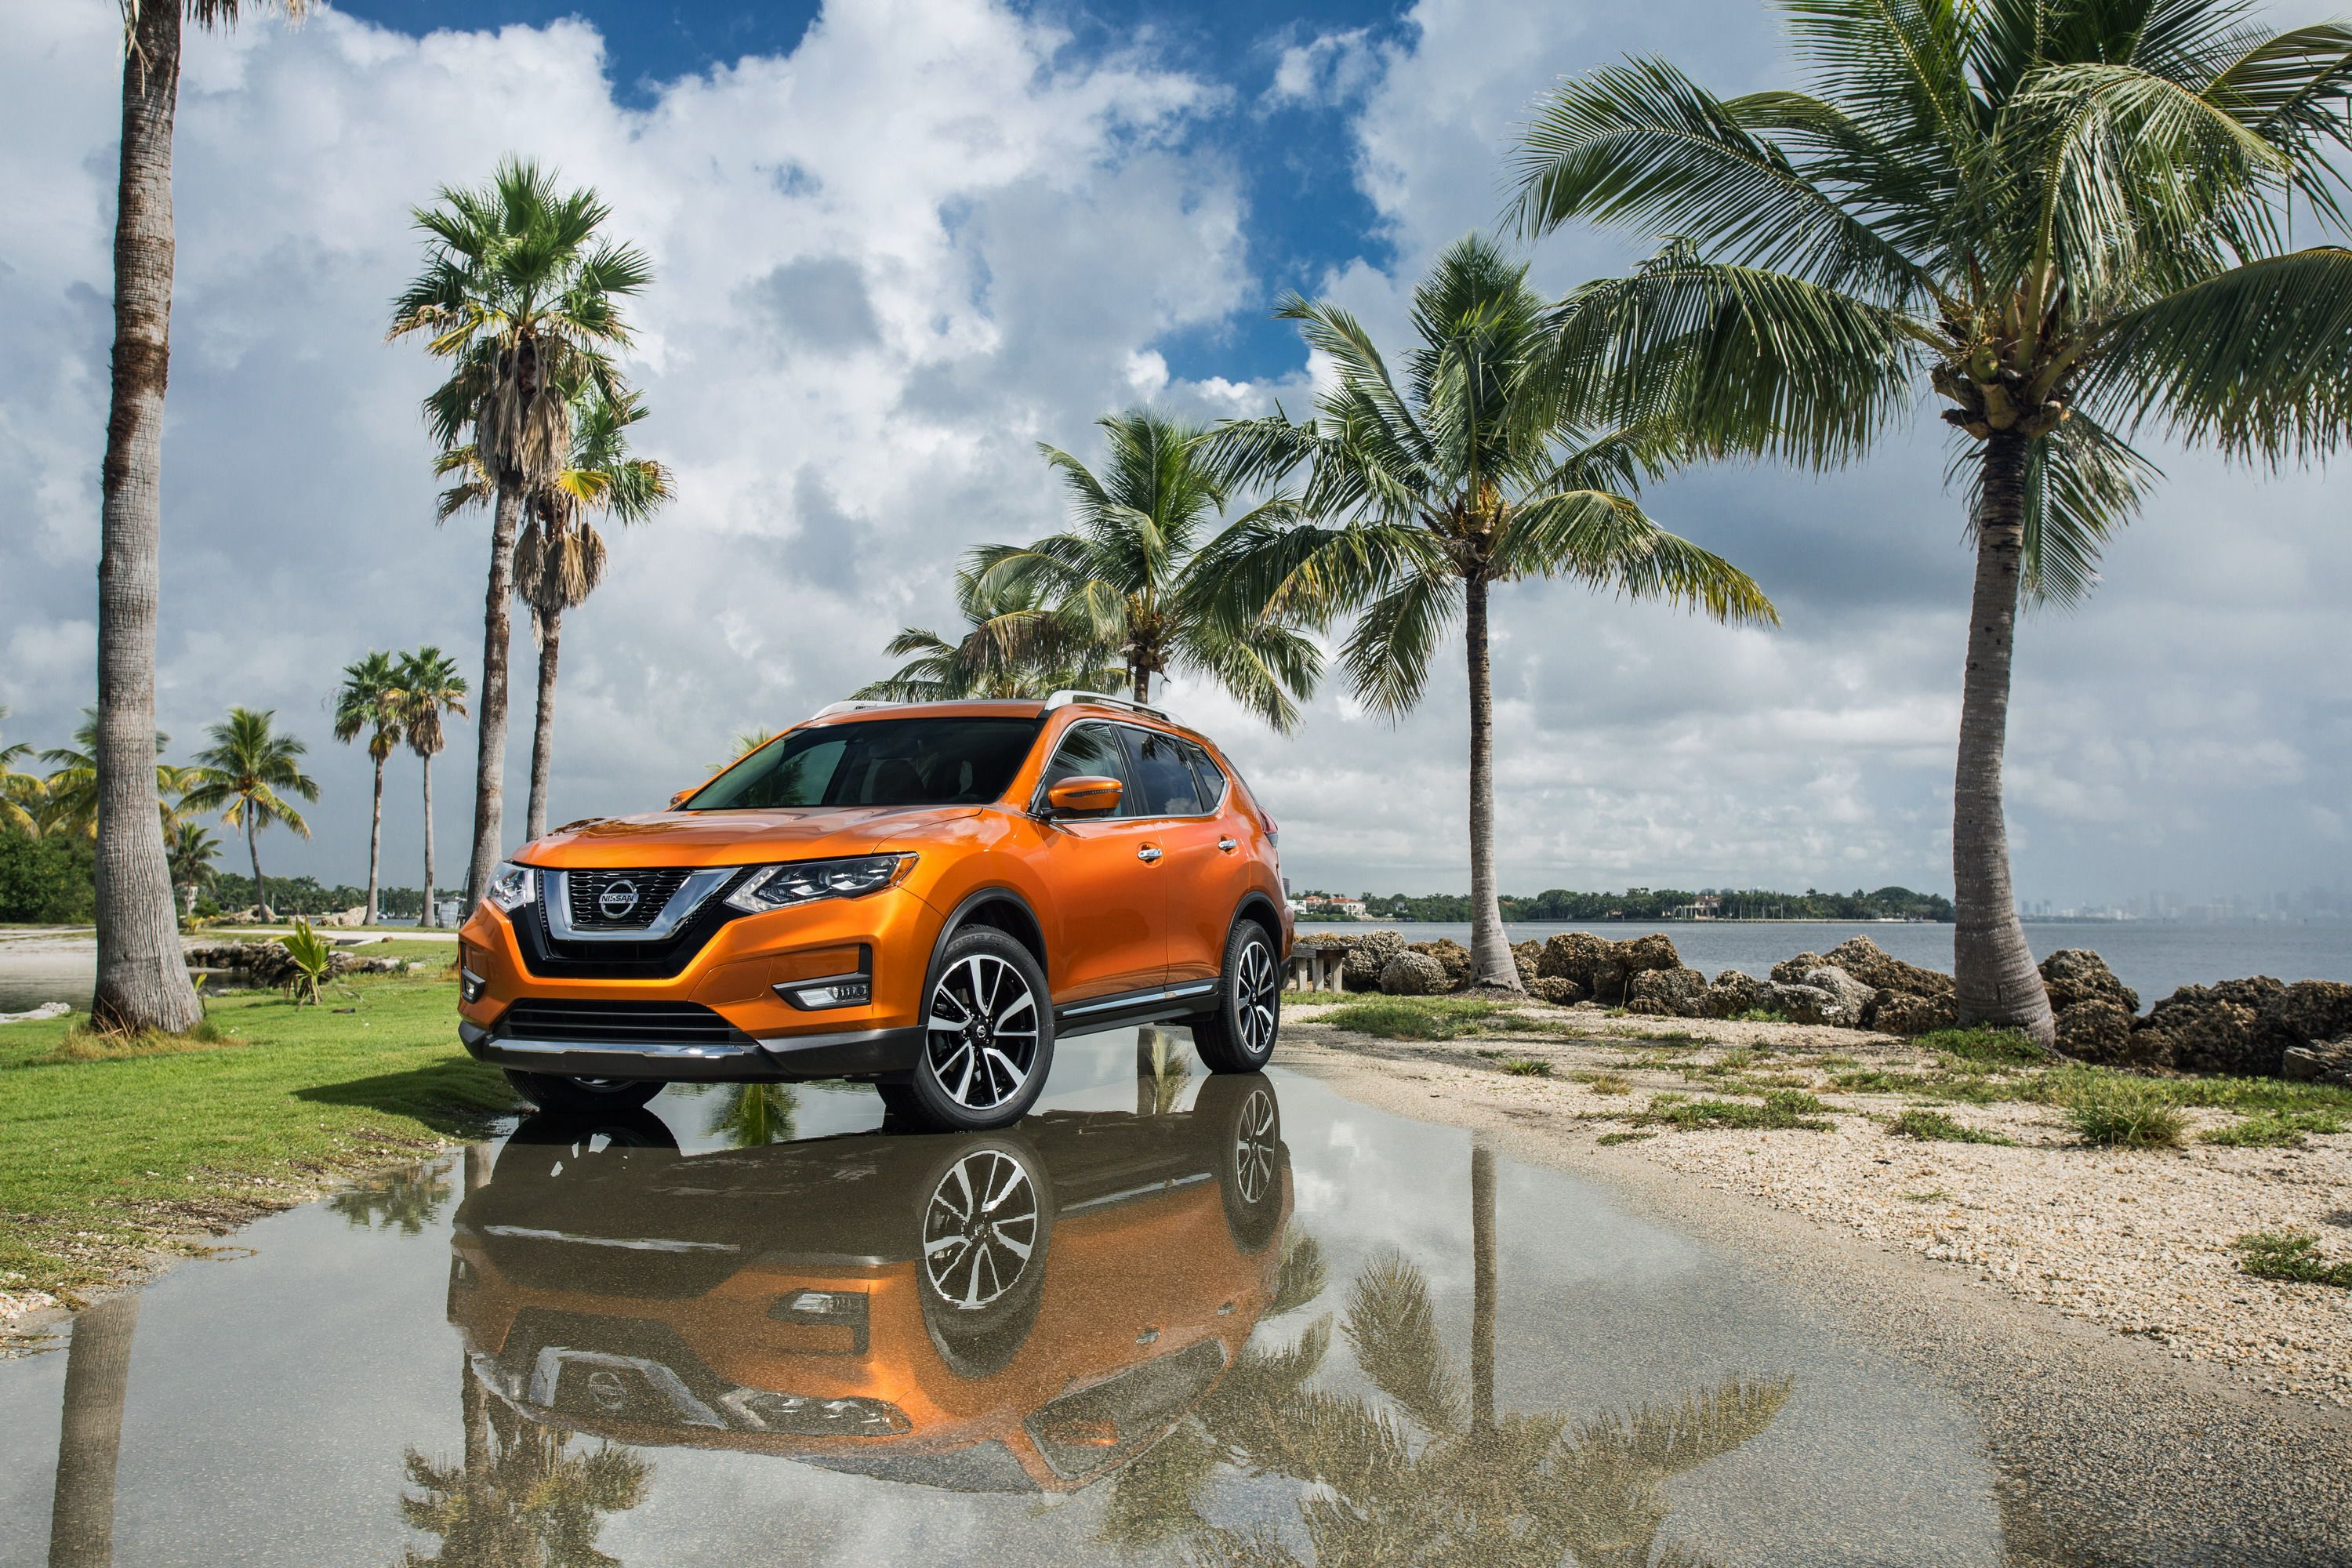 Wallpaper Of The Day 2019 Nissan Rogue Nissan rogue